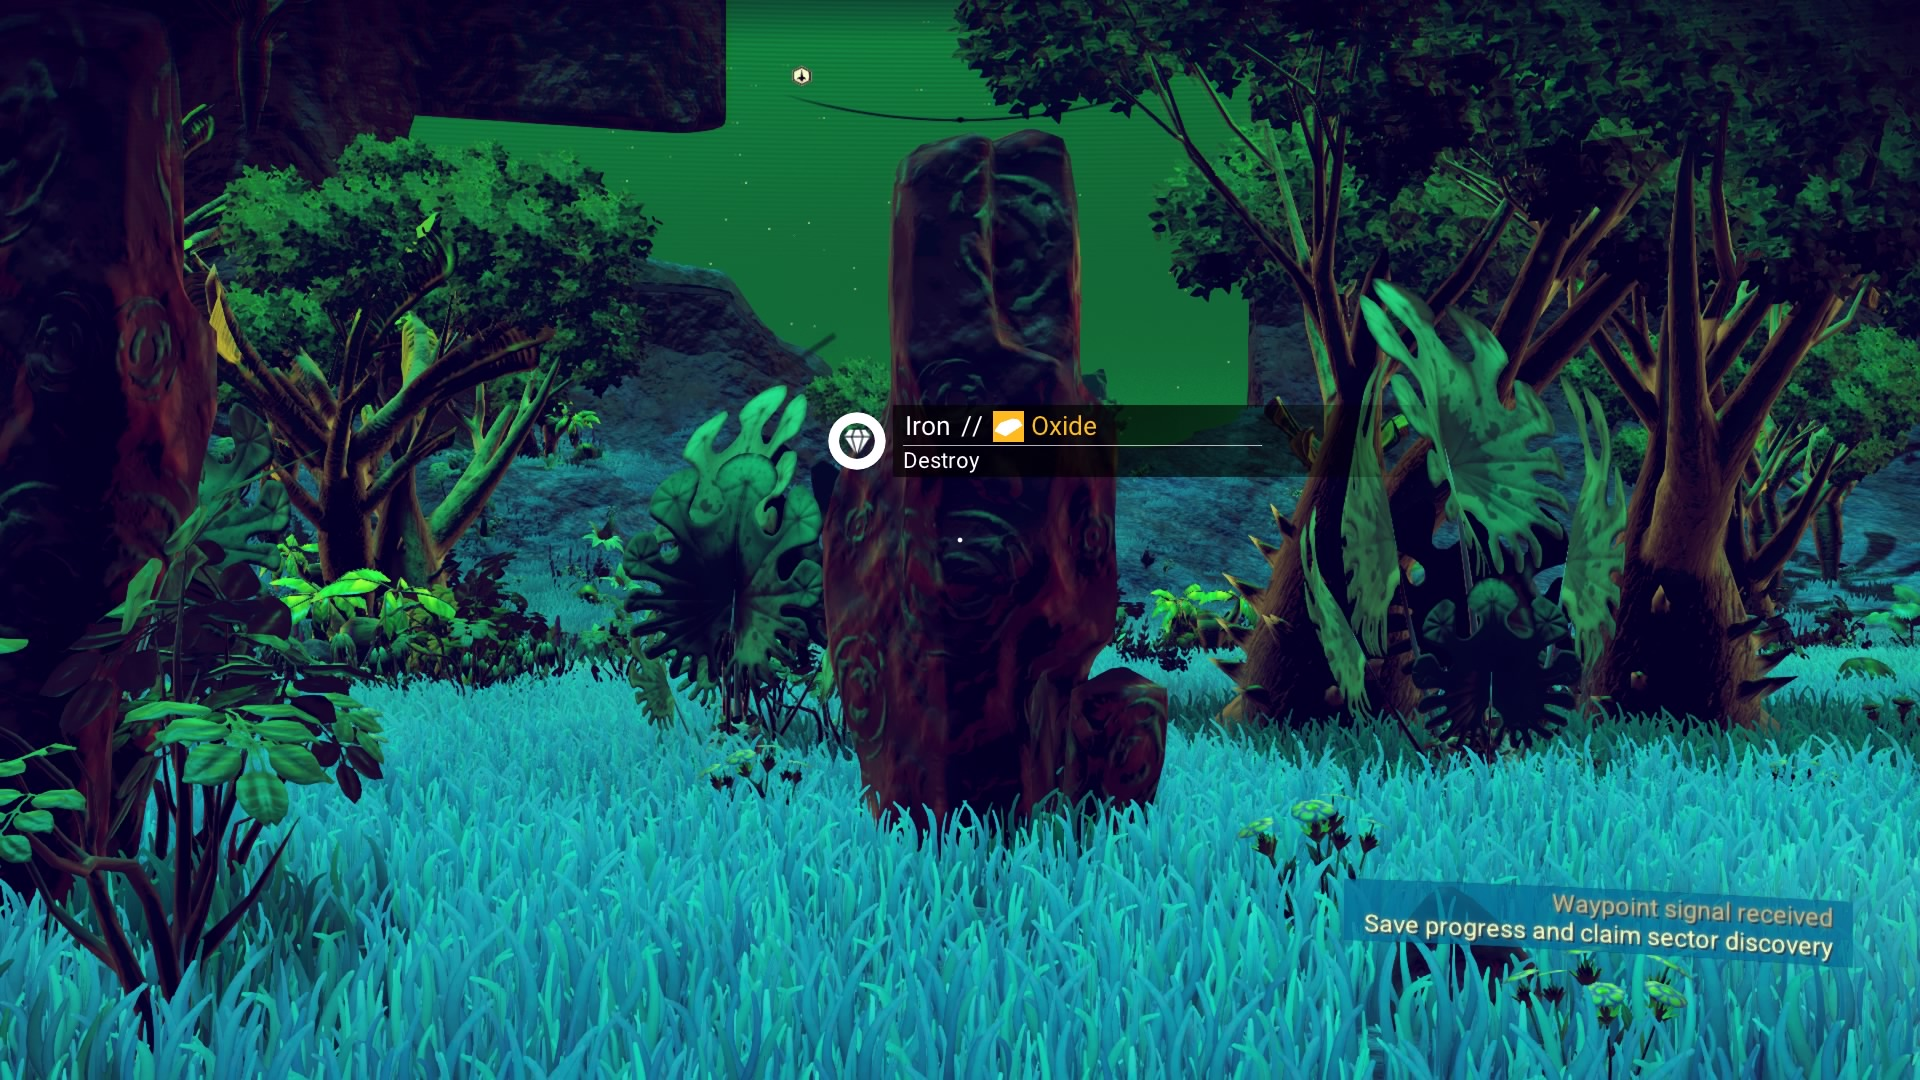 Learn No Man's Sky's secret visual language to find resources and